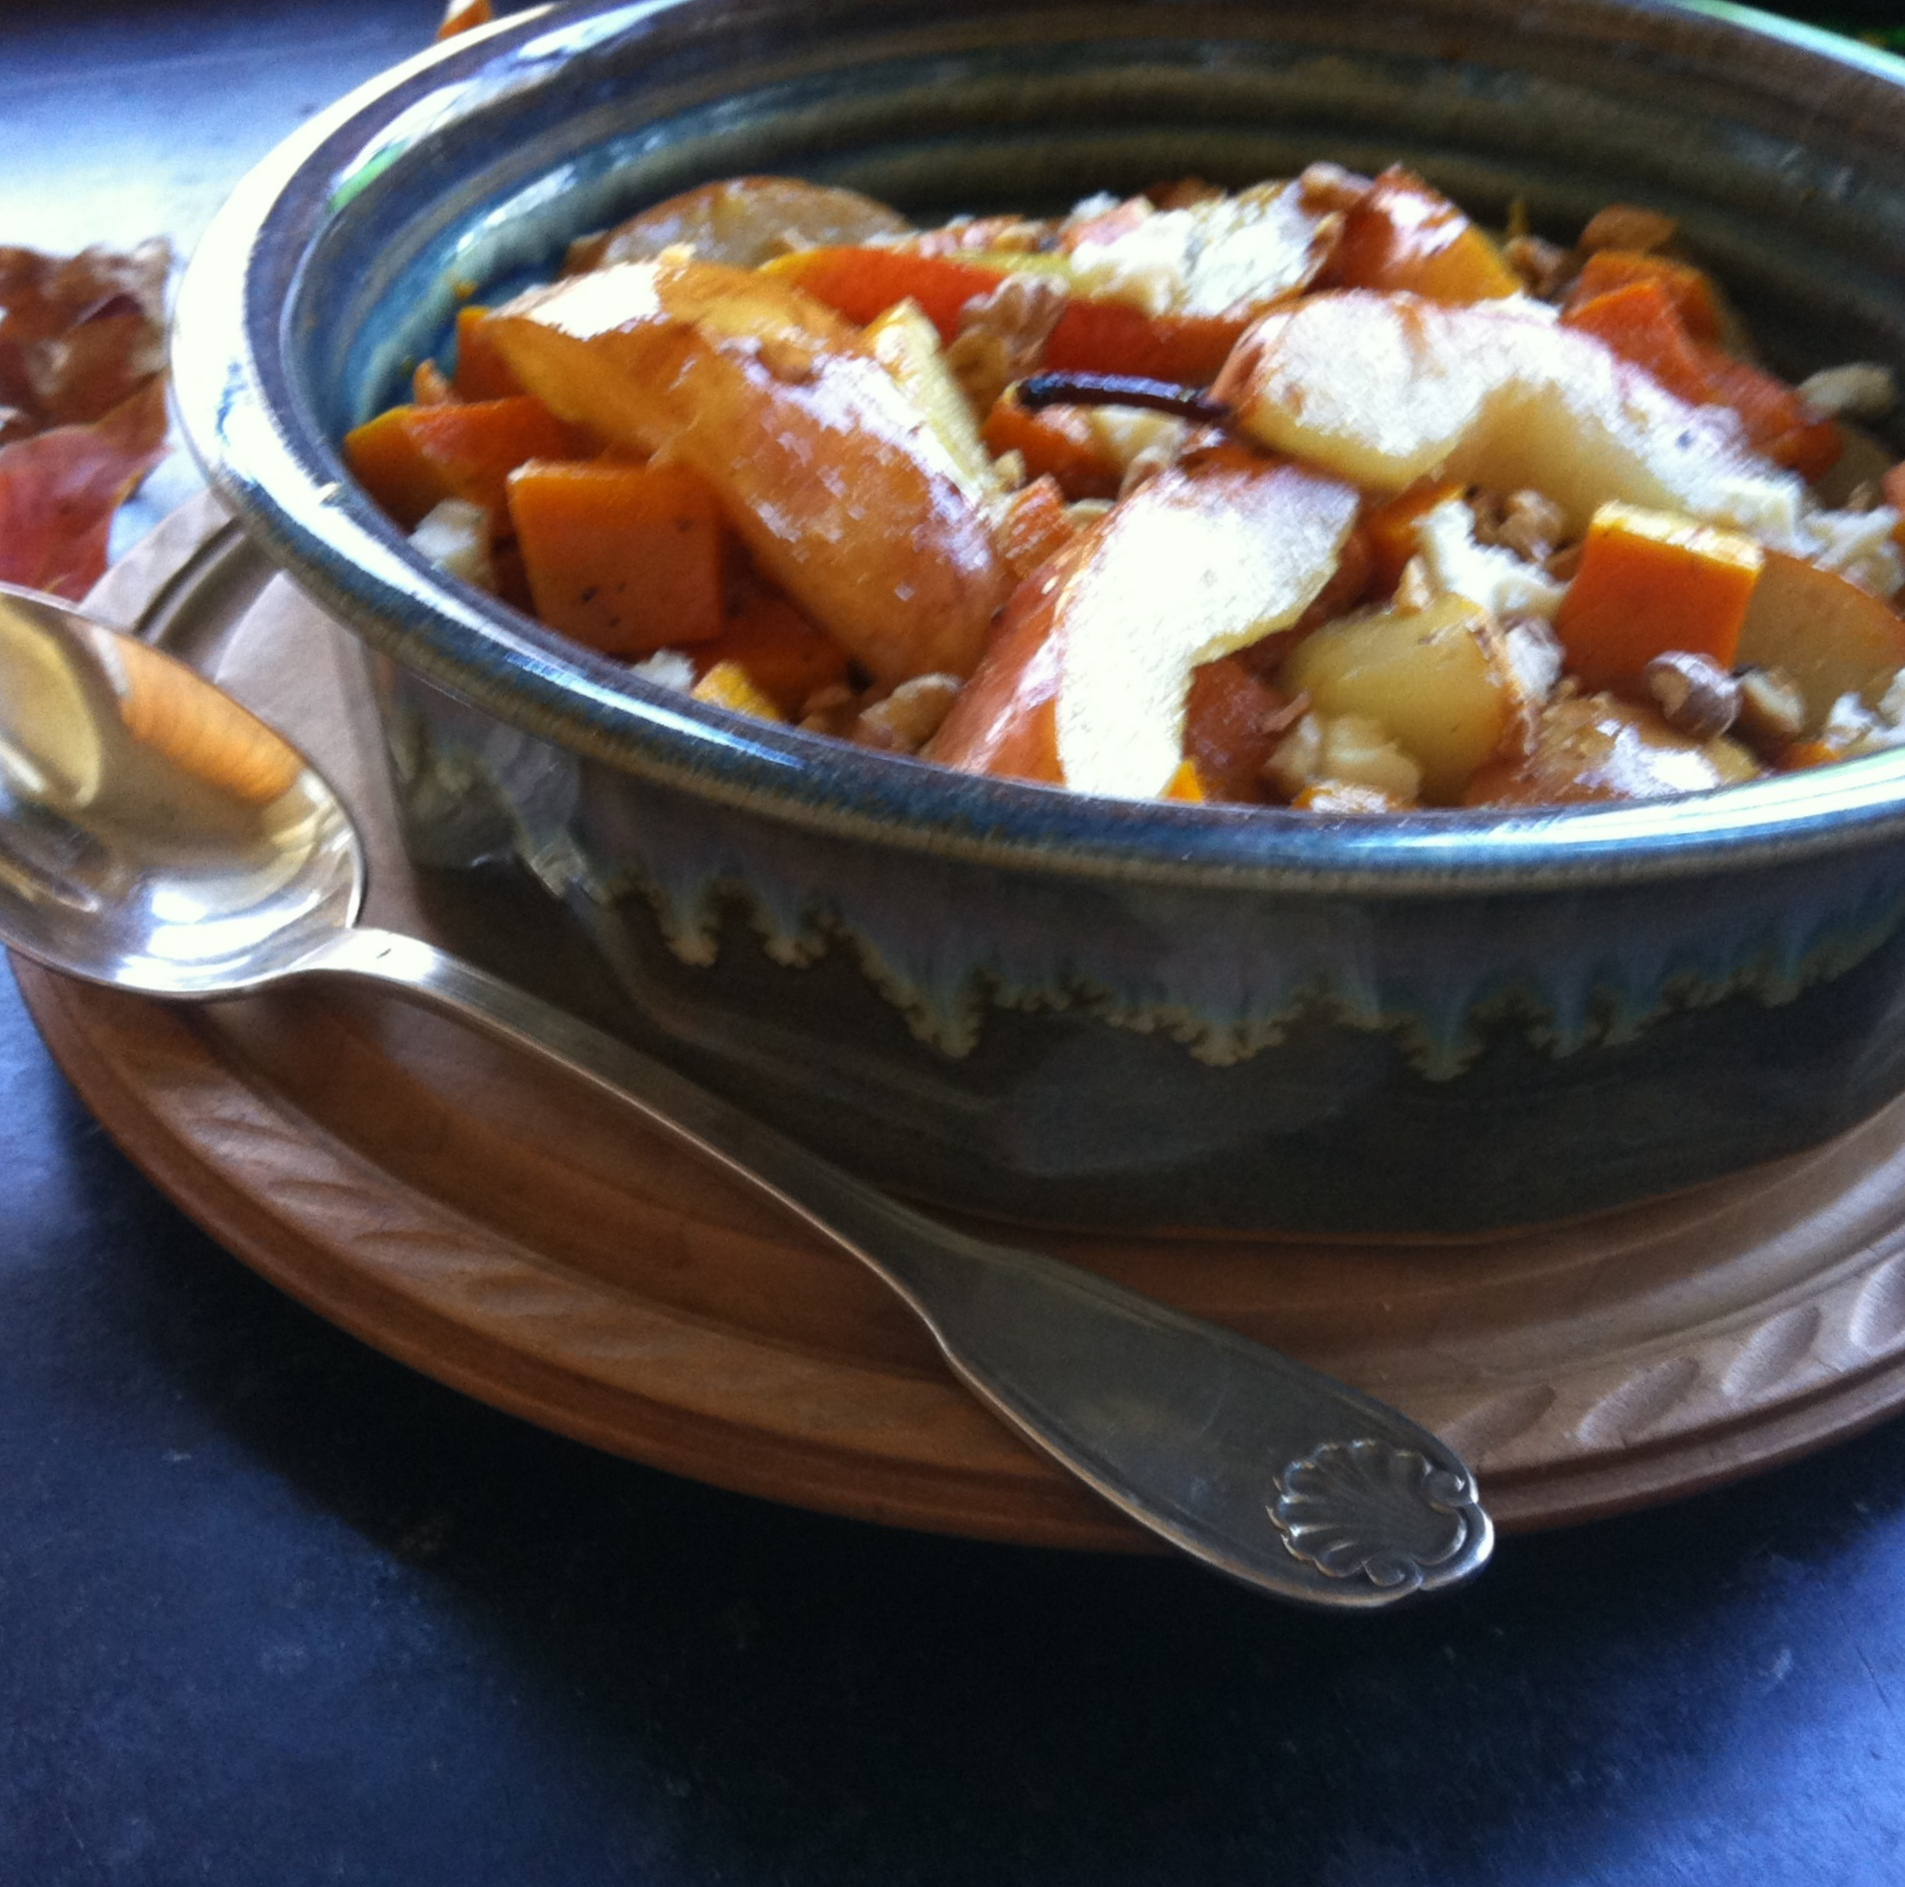 Roasted Butternut Squash and Pears 1